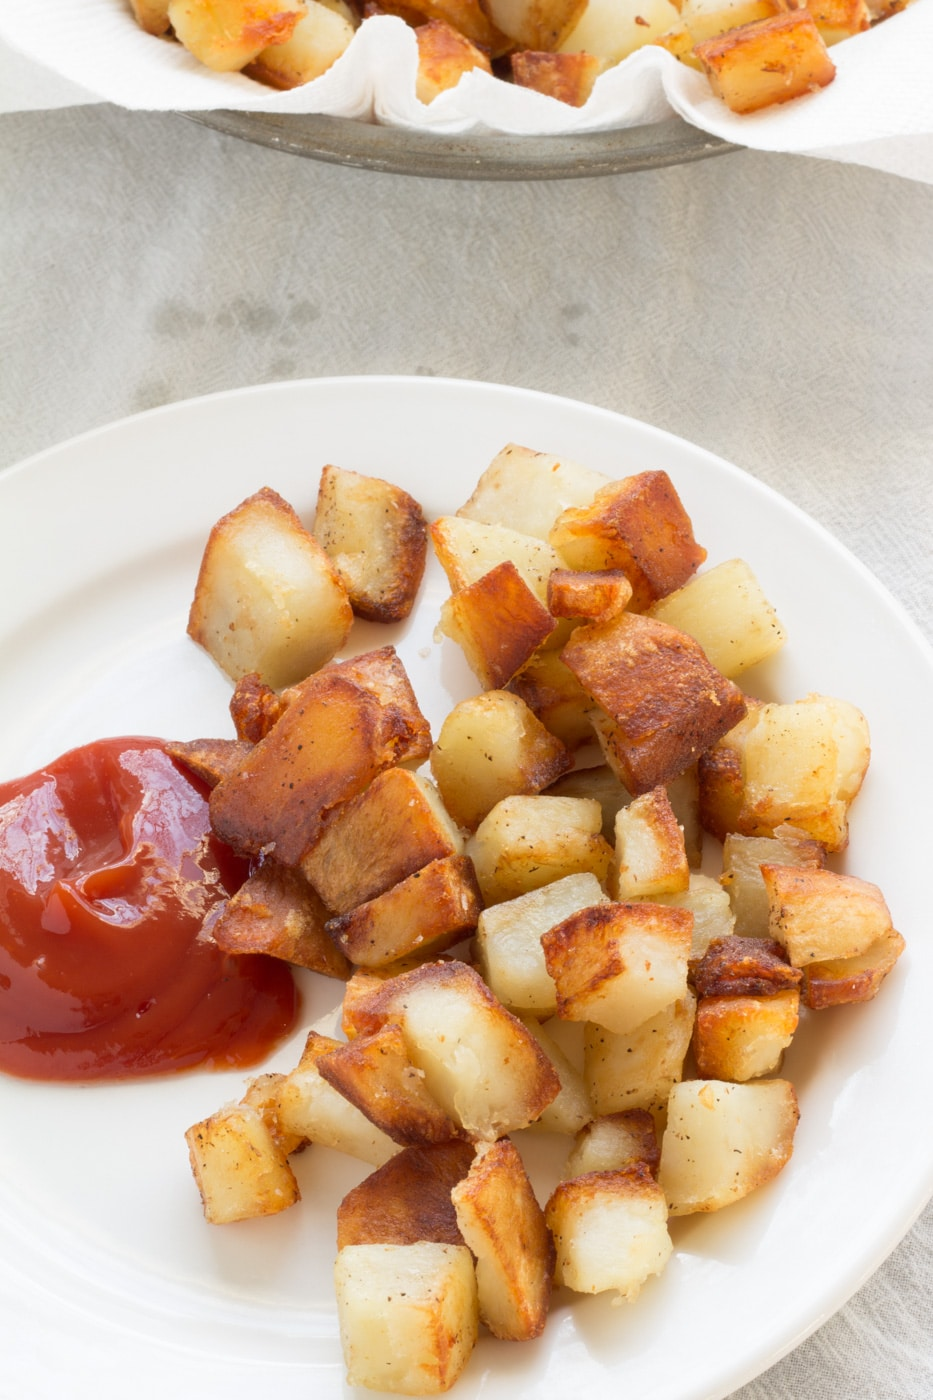 Home fries with ketchup on a white plate